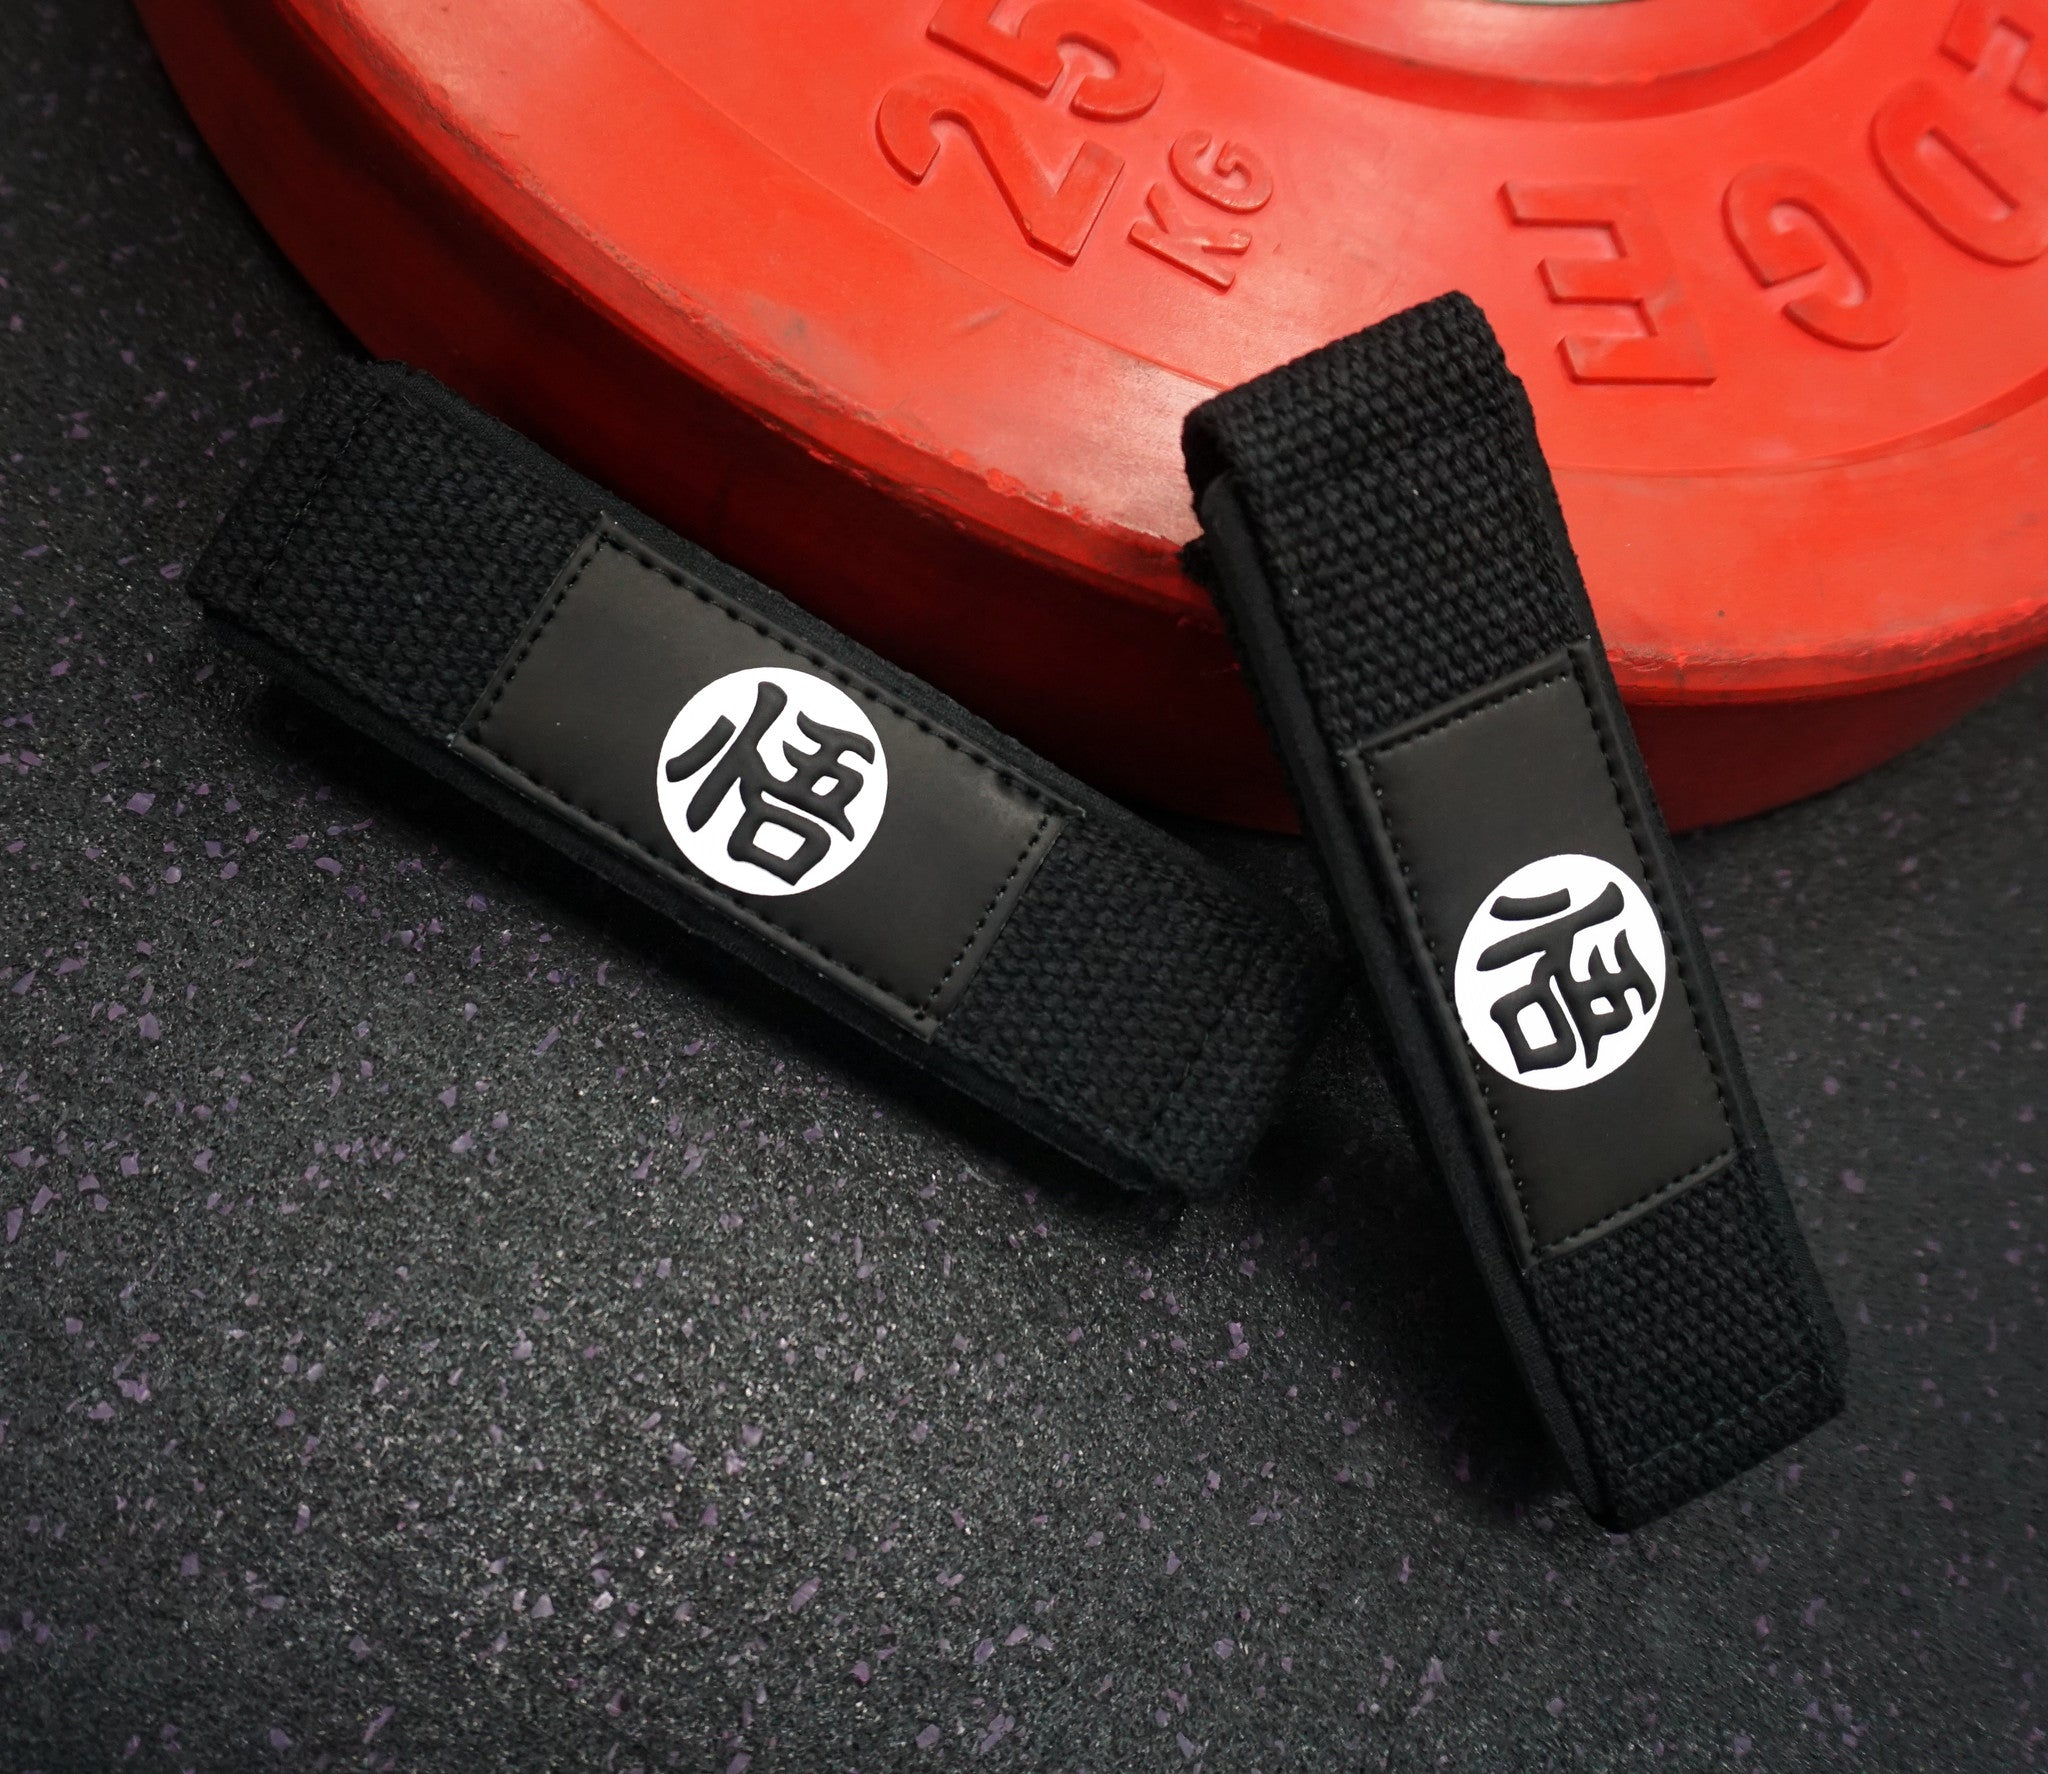 [NEW ARRIVAL] 'Ascension' Heavy Duty Figure 6 Lifting Straps - Black